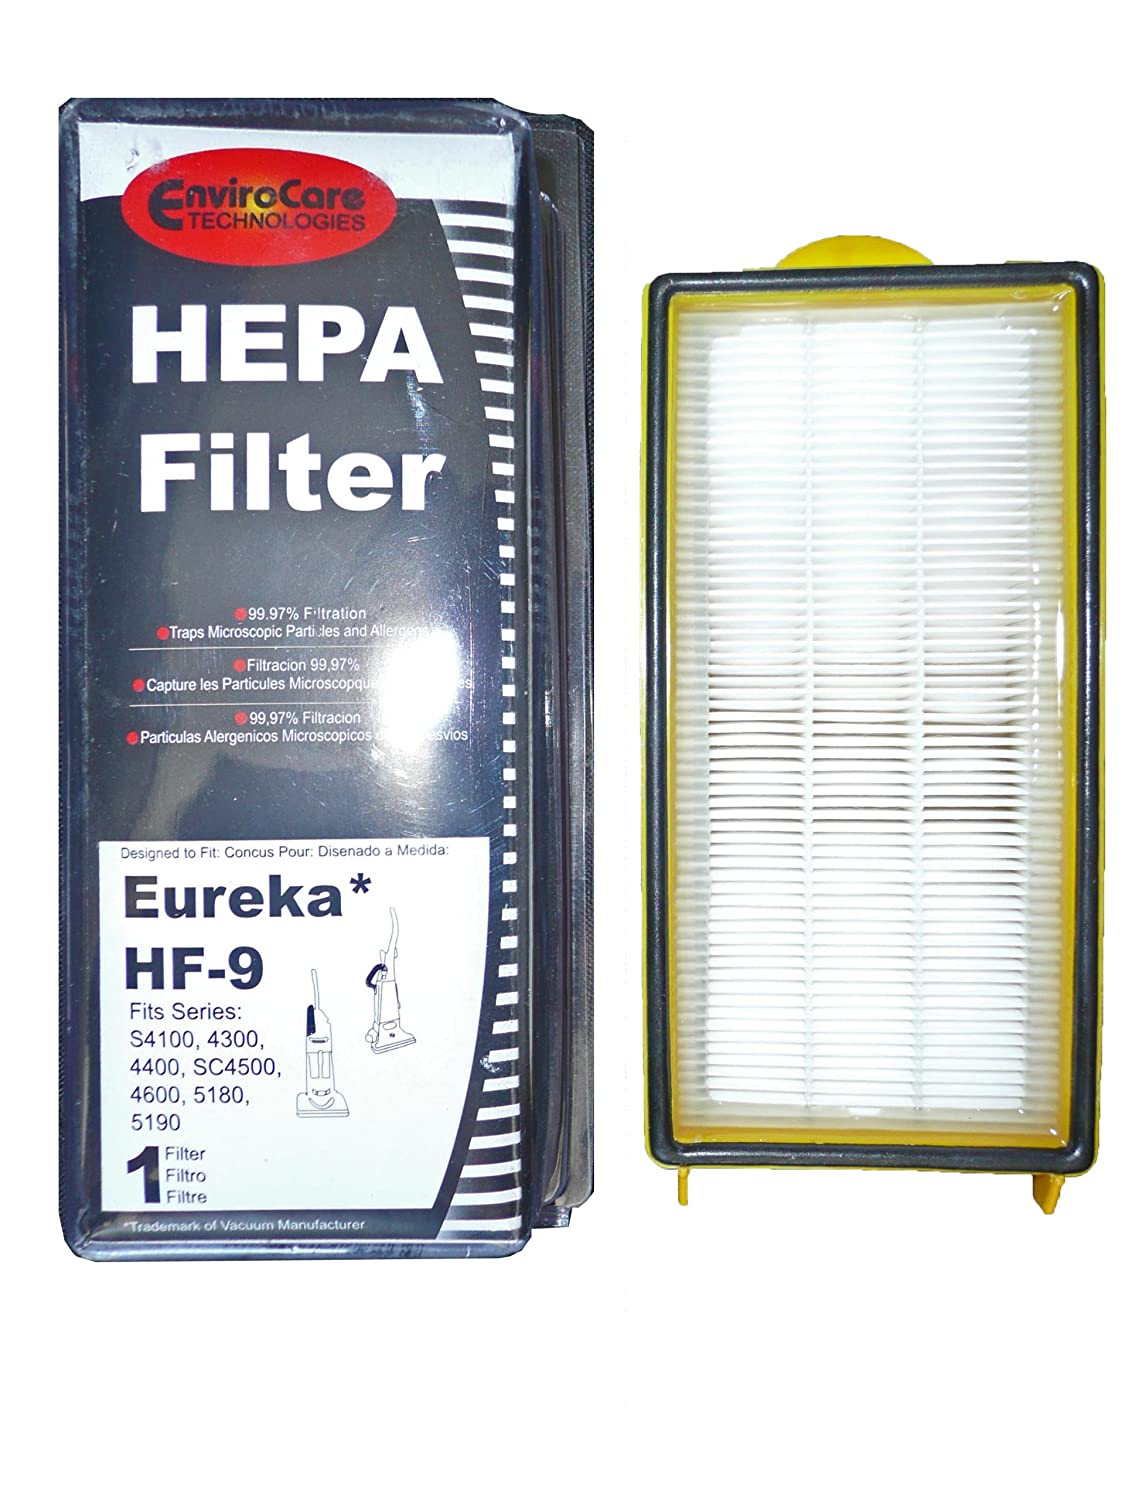 Eureka (1) 60285 Eureka HF9 Hepa Pleated Vacuum Filter, Bagless Cyclonic, Heavy Duty Upright, Self Propelled, Cleaner & Cyclonic at Sears.com